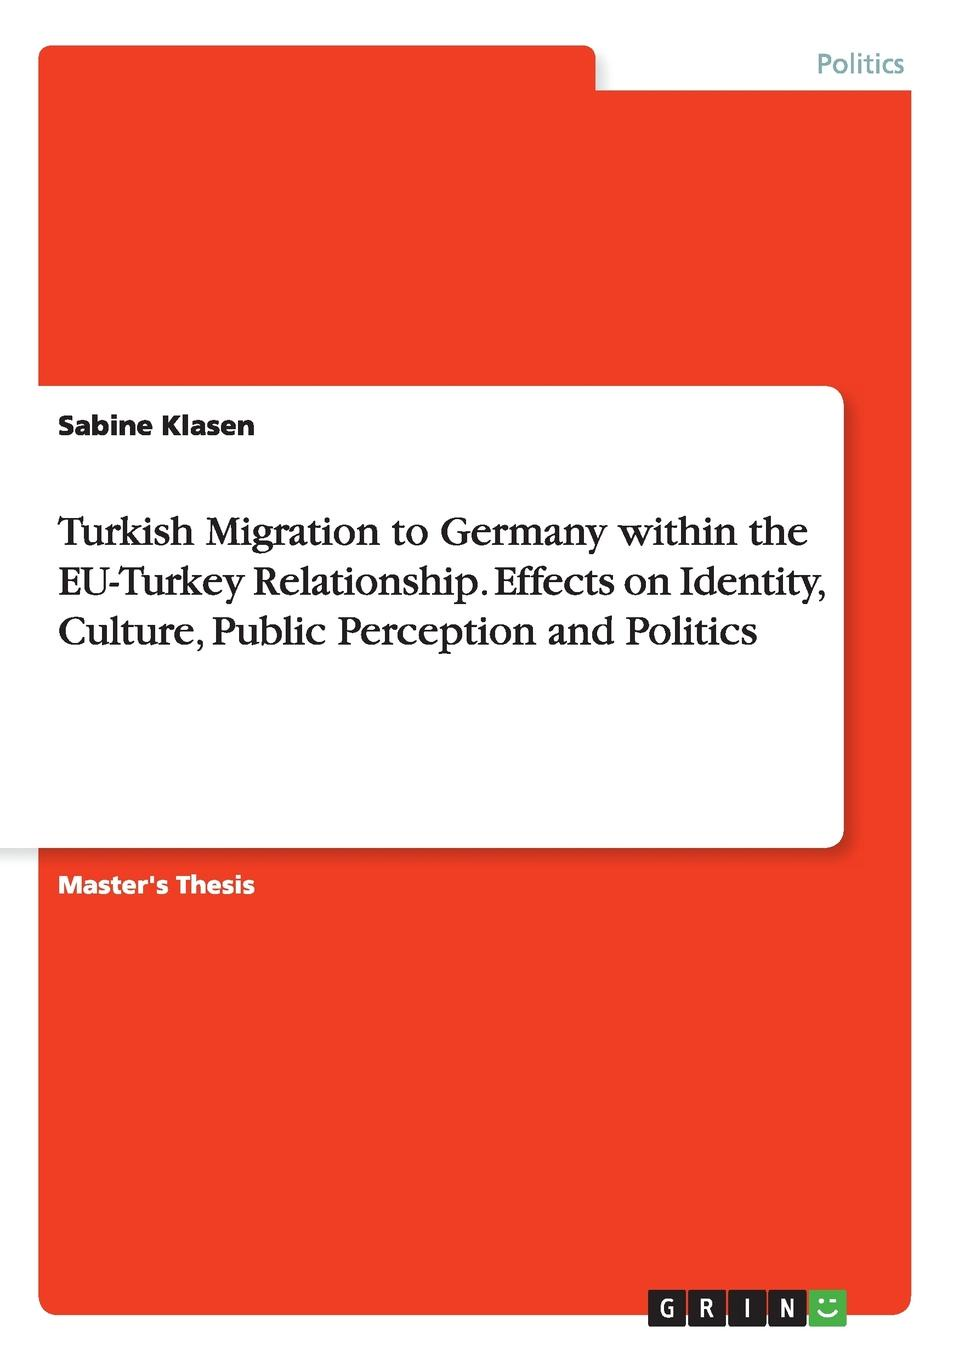 Sabine Klasen Turkish Migration to Germany within the EU-Turkey Relationship. Effects on Identity, Culture, Public Perception and Politics fast ship from germany full automatic 110v 220v 96 mini china egg incubator for hatching chicken quail bird turkey